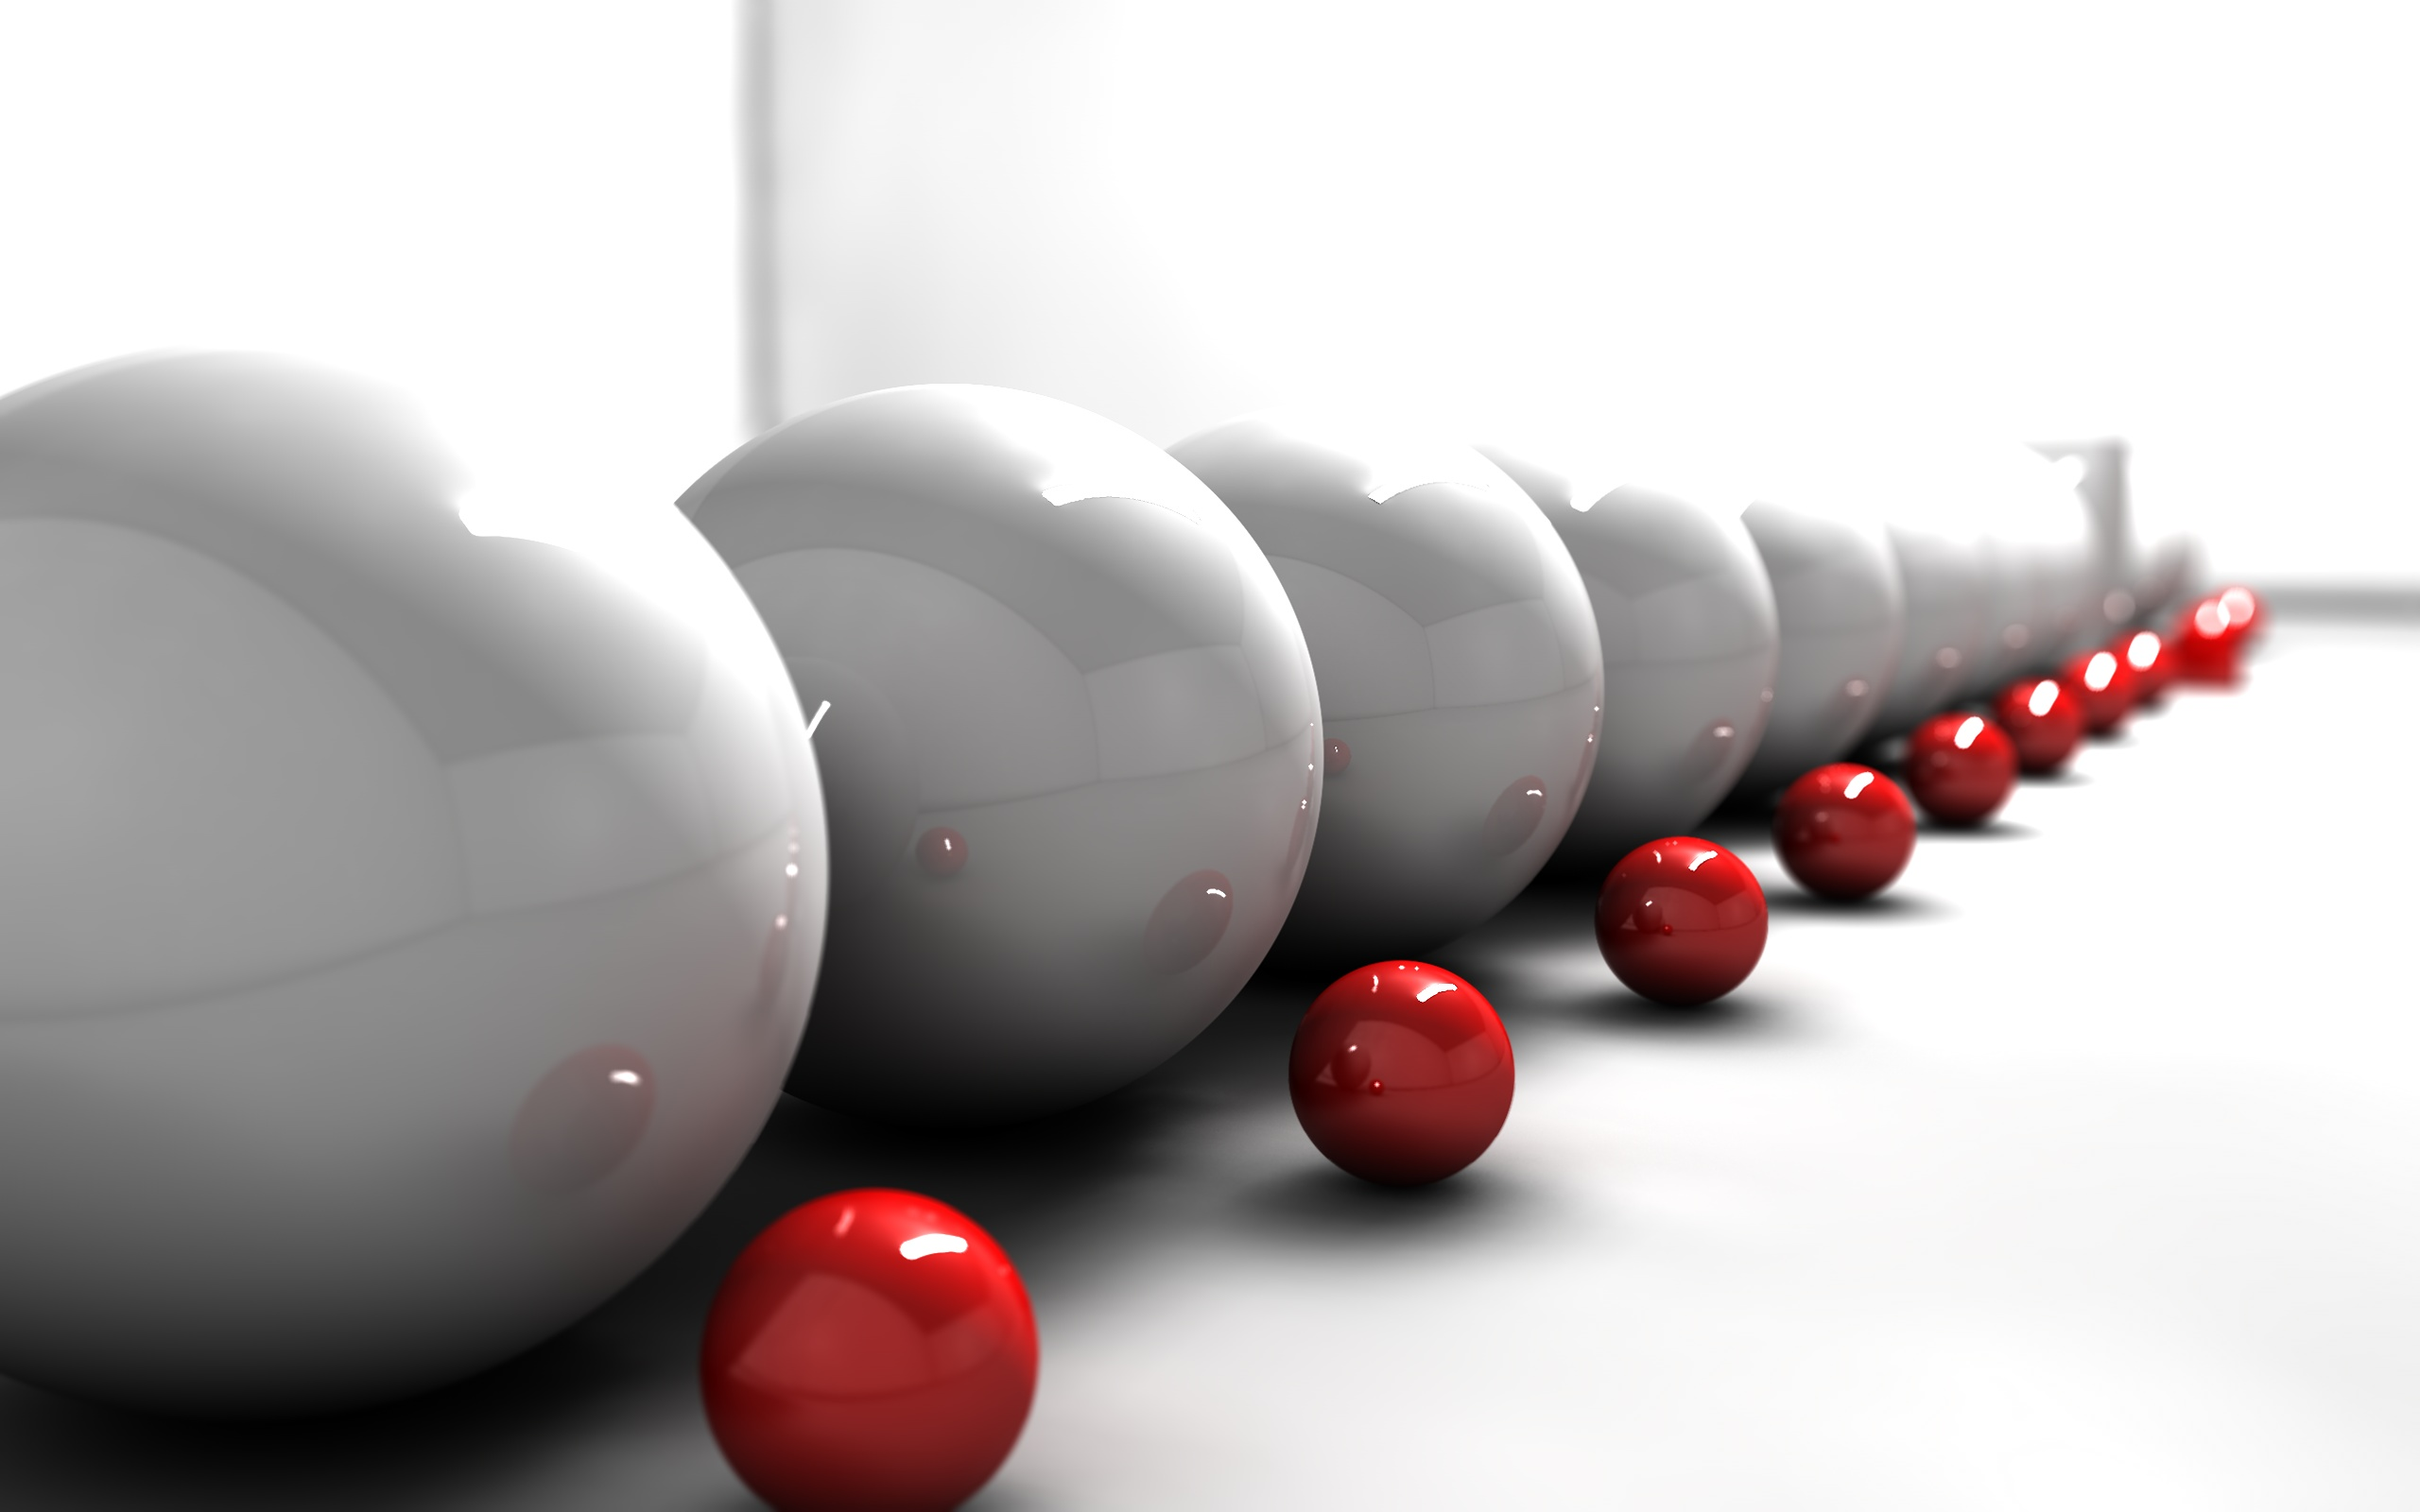 CGI - Balls  - Light - White - Red - Ball Wallpaper